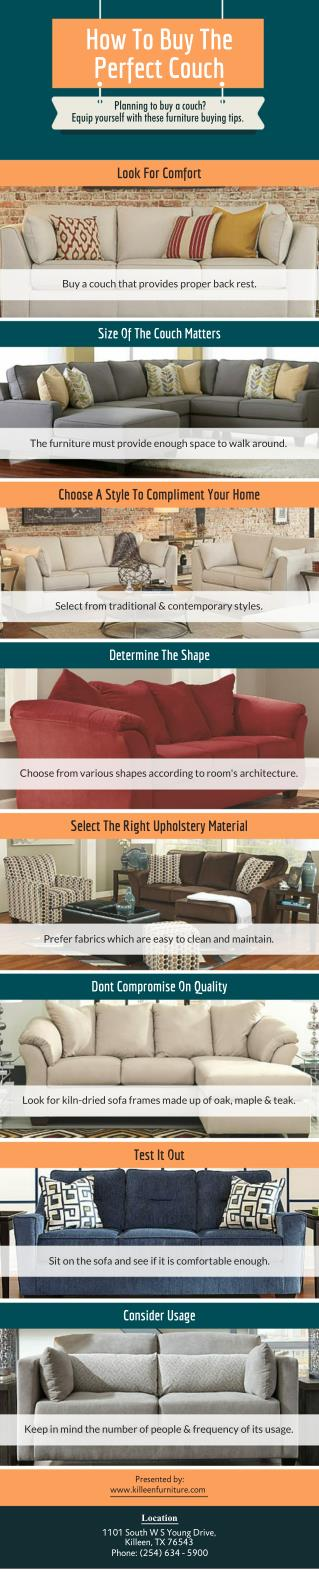 Buying The Perfect Couch